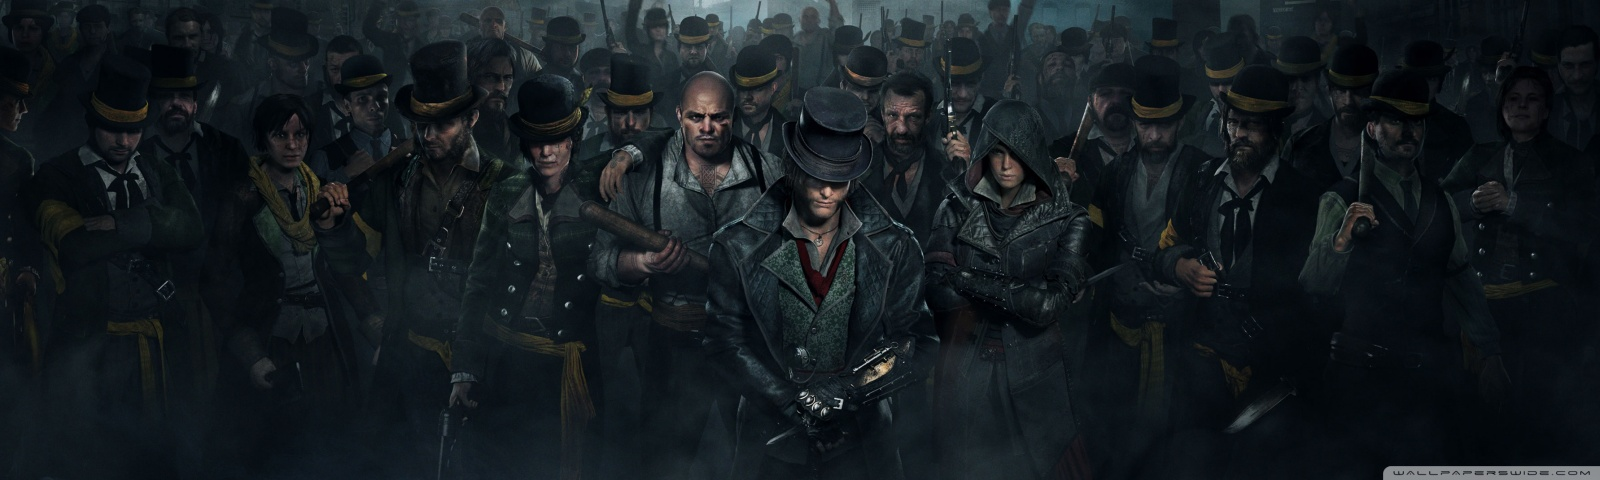 Assassin s Creed Syndicate Gang 2015 video game        4K HD Desktop     Dual Wide 5 3